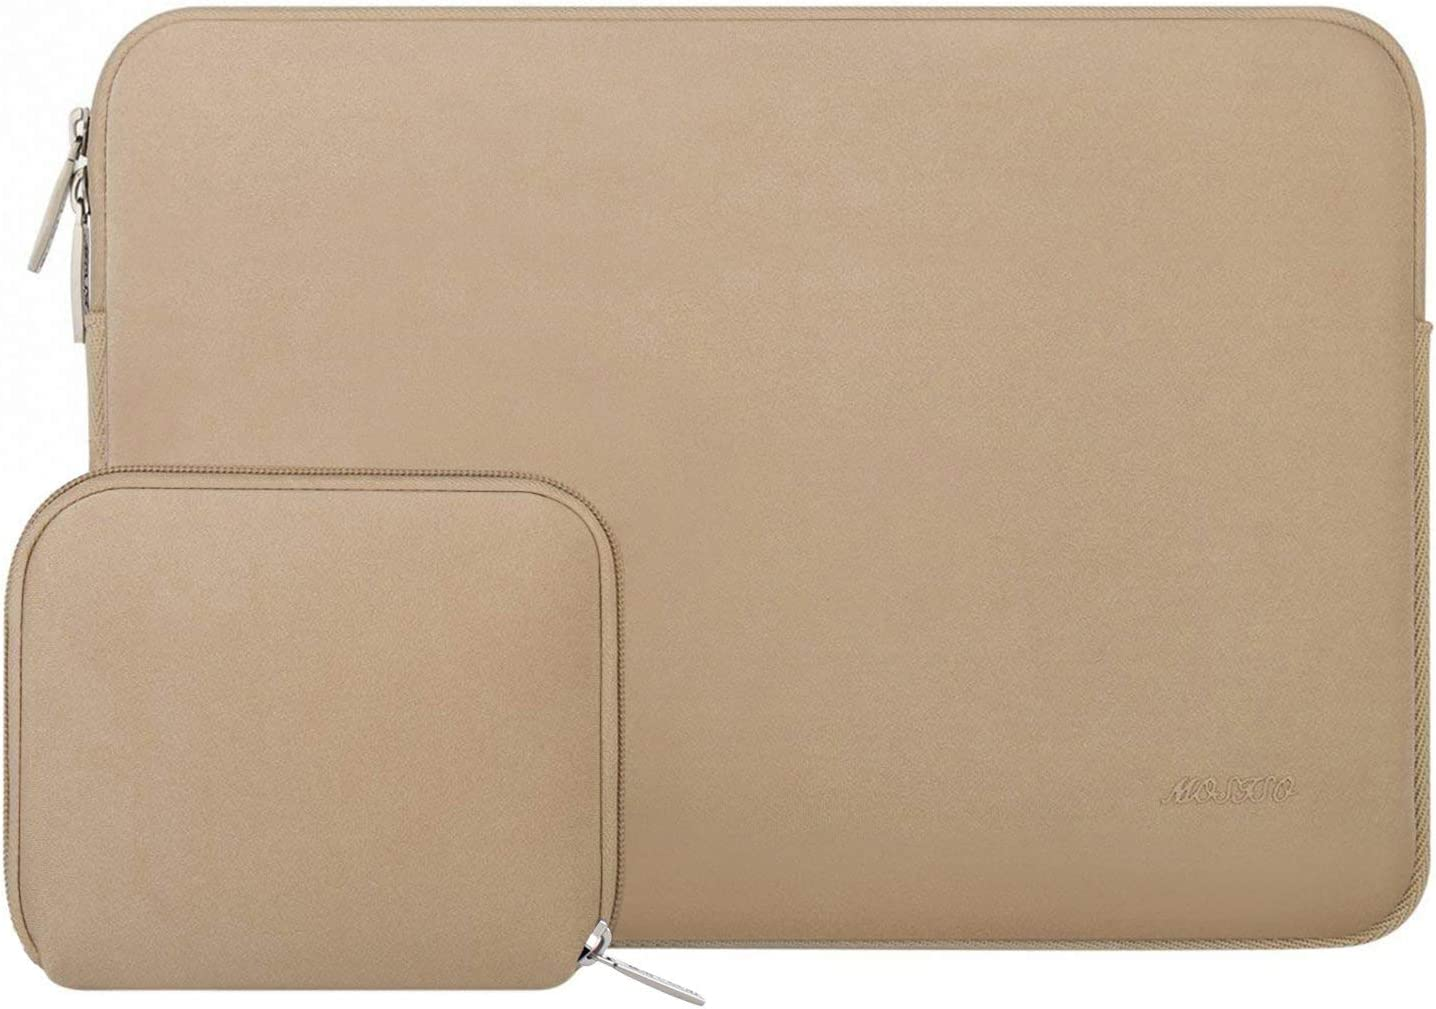 MOSISO Laptop Sleeve Compatible with 13-13.3 inch MacBook Pro, MacBook Air, Notebook Computer, Water Repellent Neoprene Bag with Small Case, Apricot